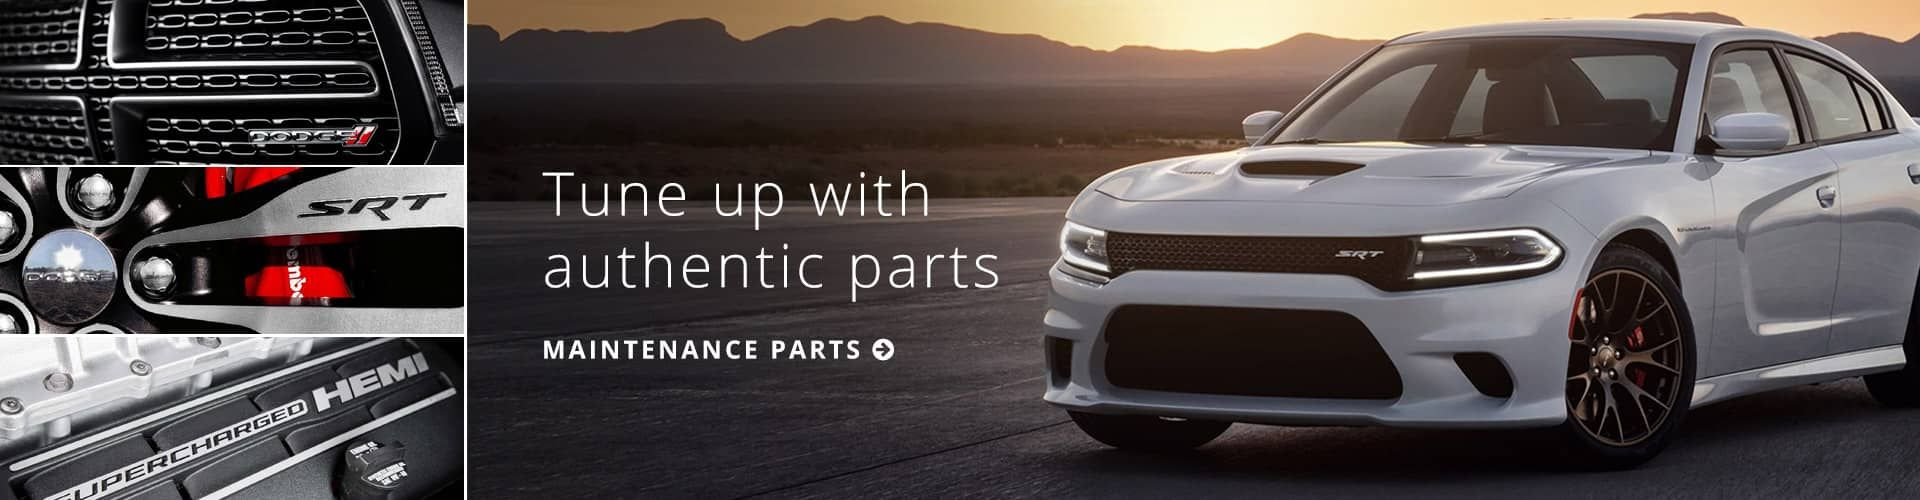 Shop Maintenance Parts